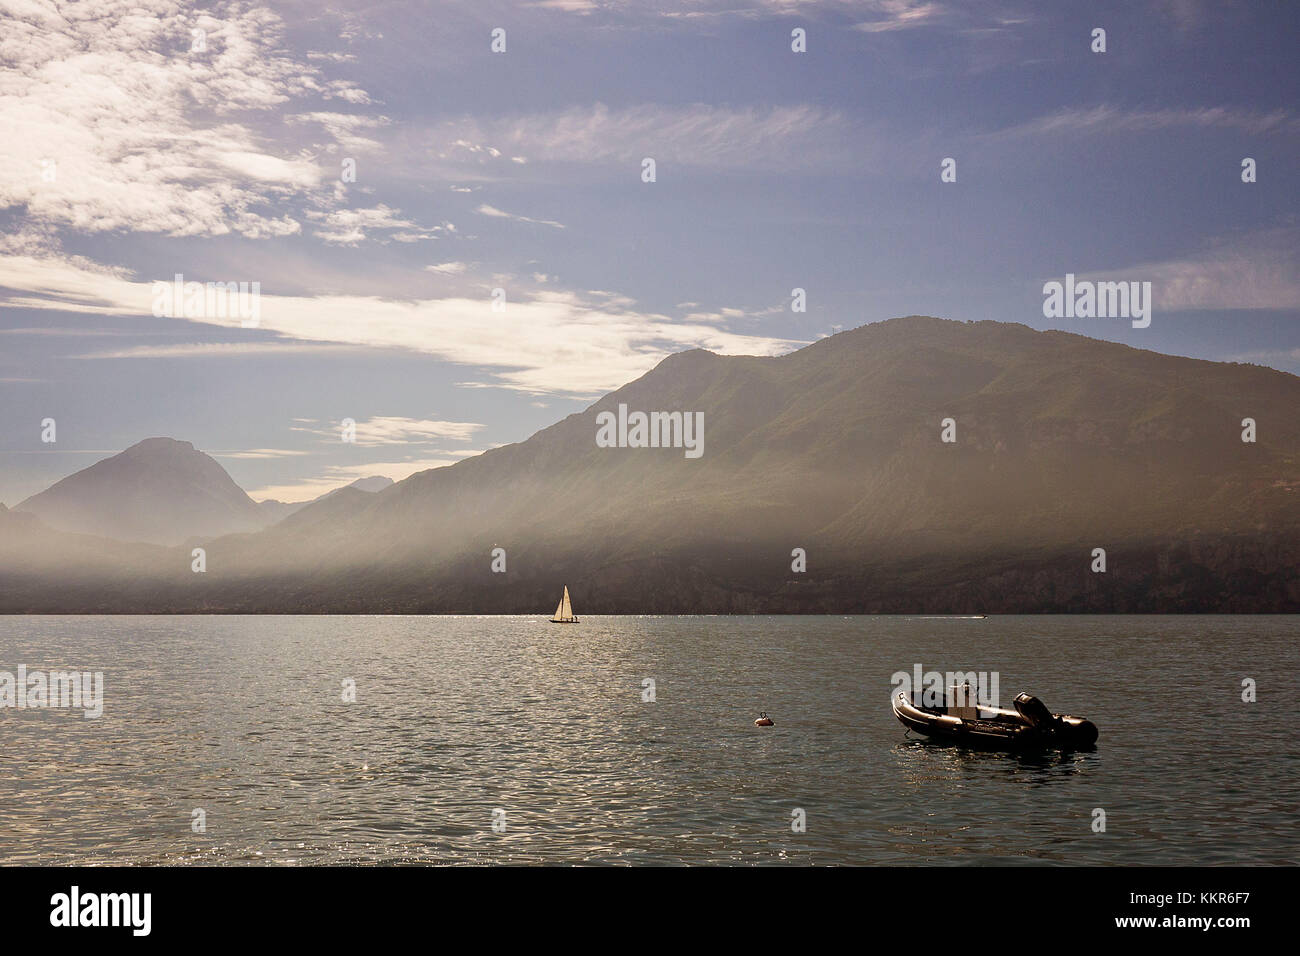 Hot summer day on Lake Garda - Stock Image